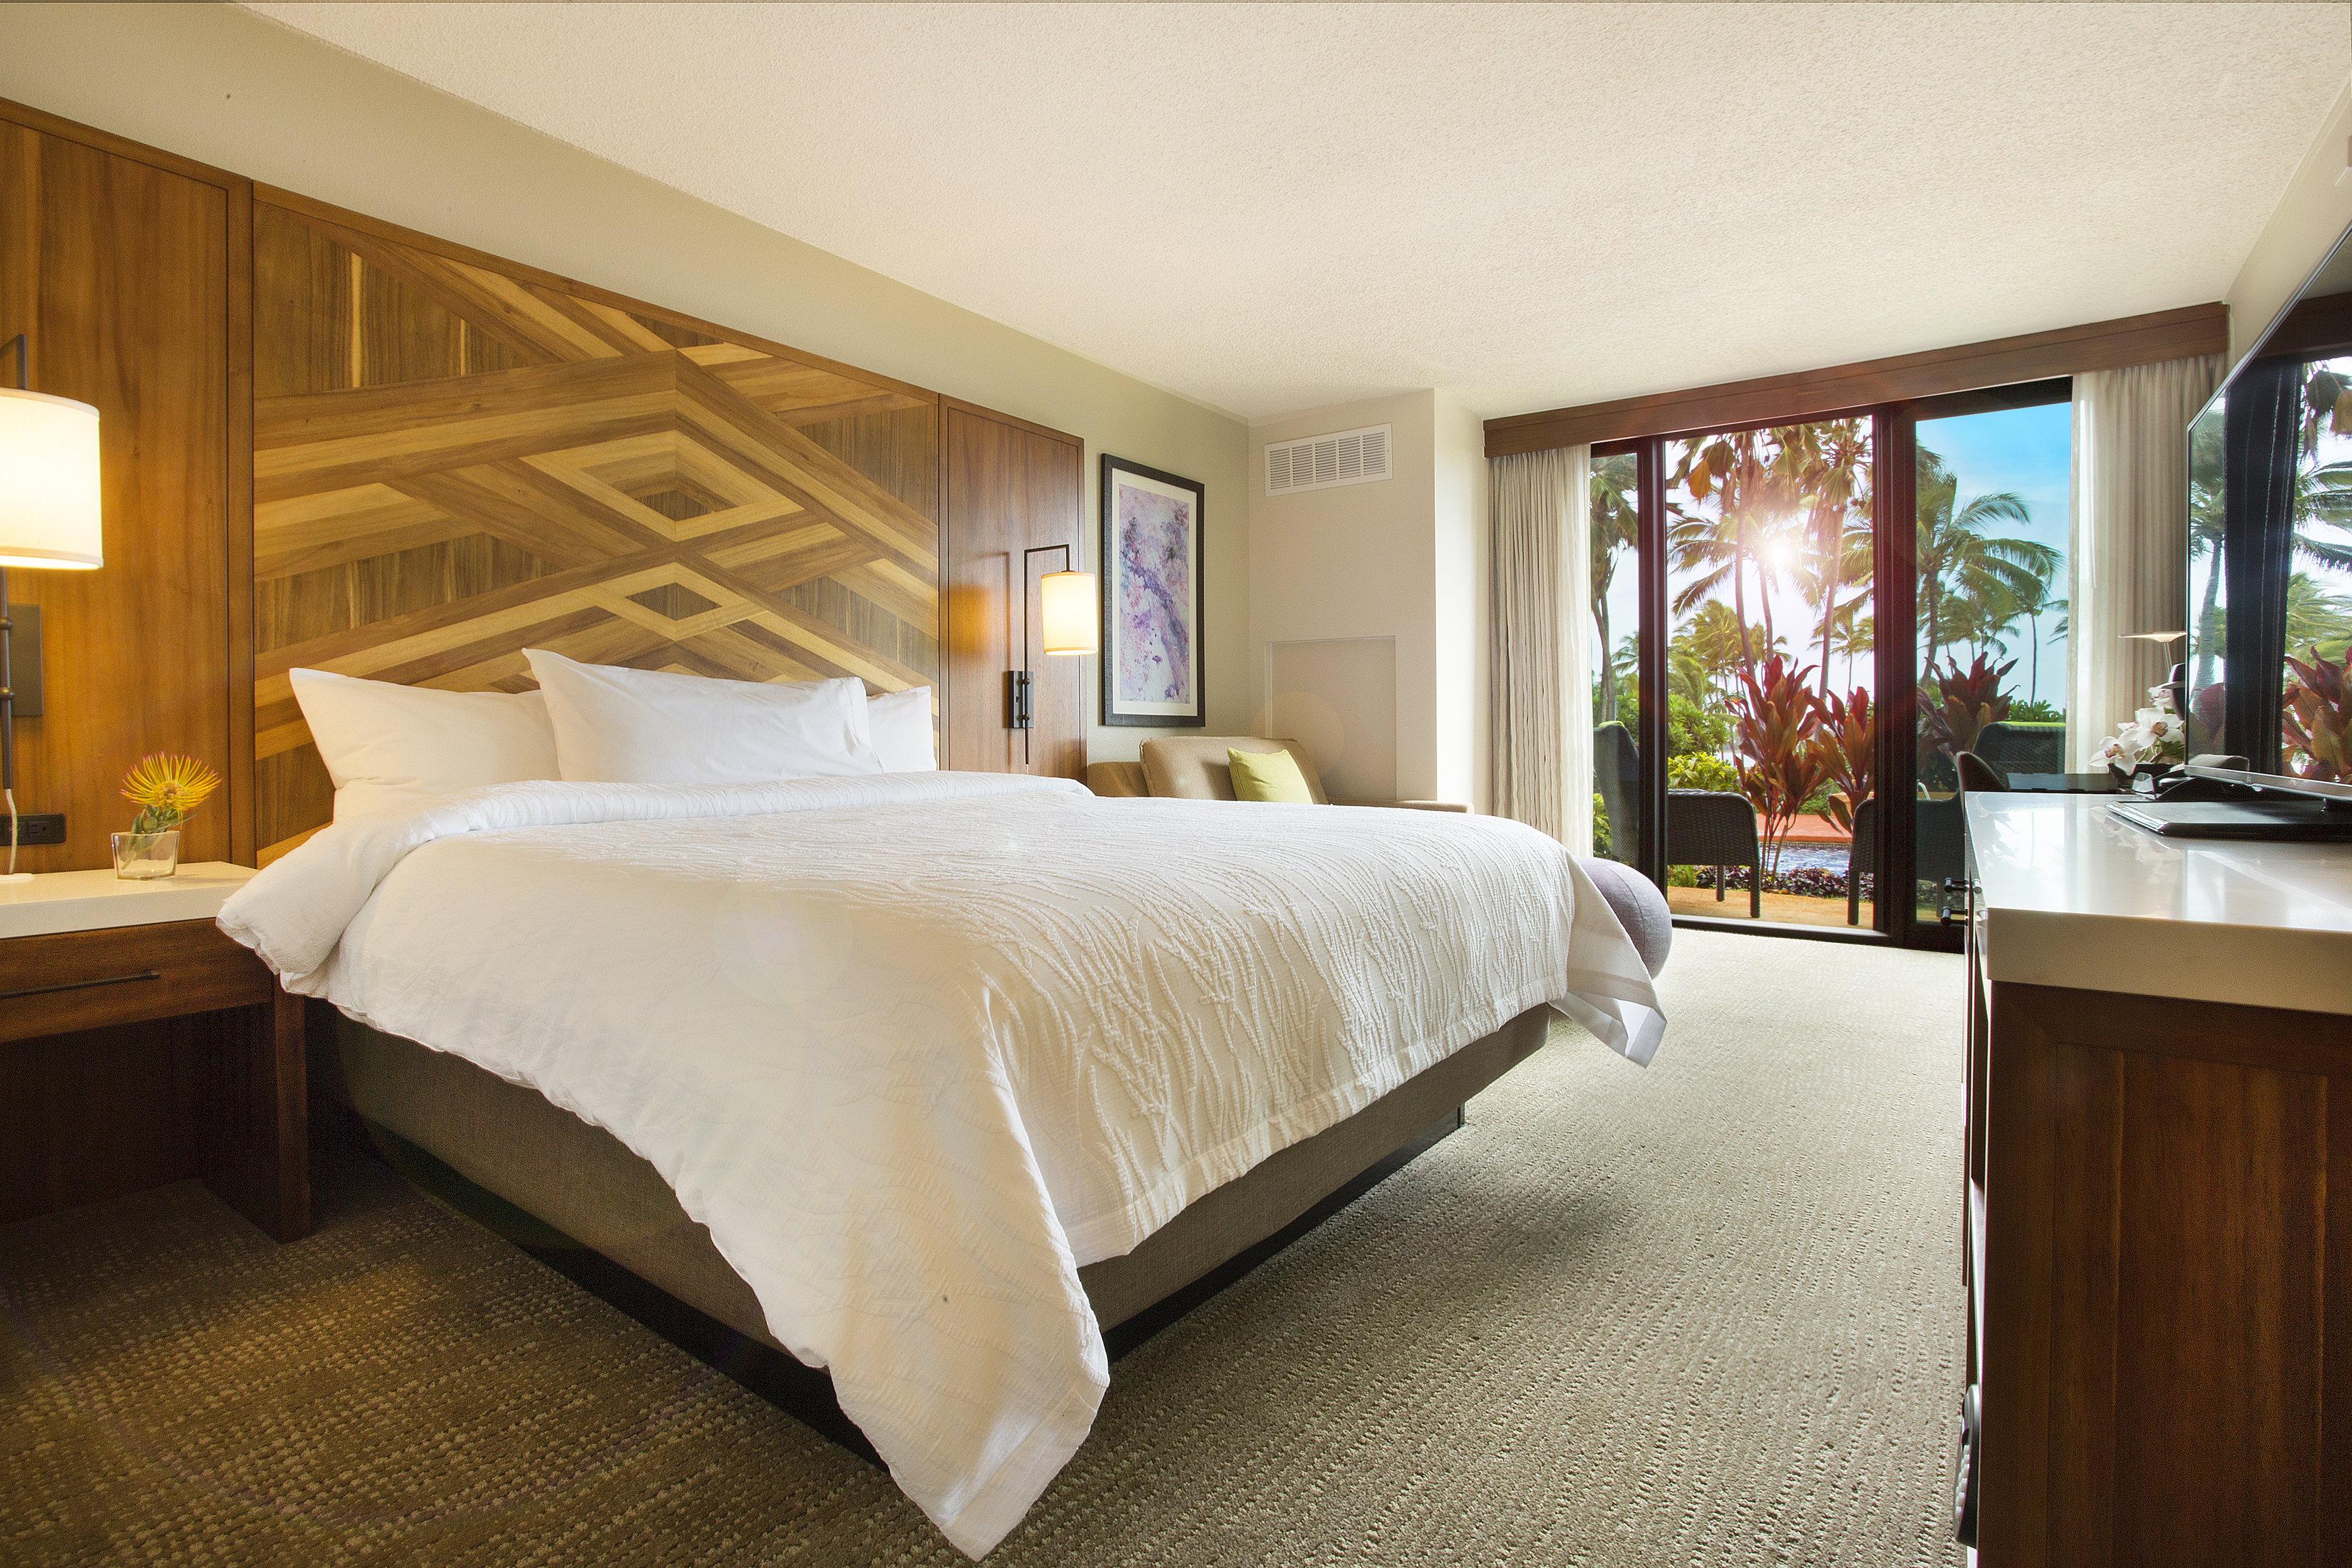 Hilton Garden Inn Opens First Property In Hawaii And Establishes Presence In All 50 States